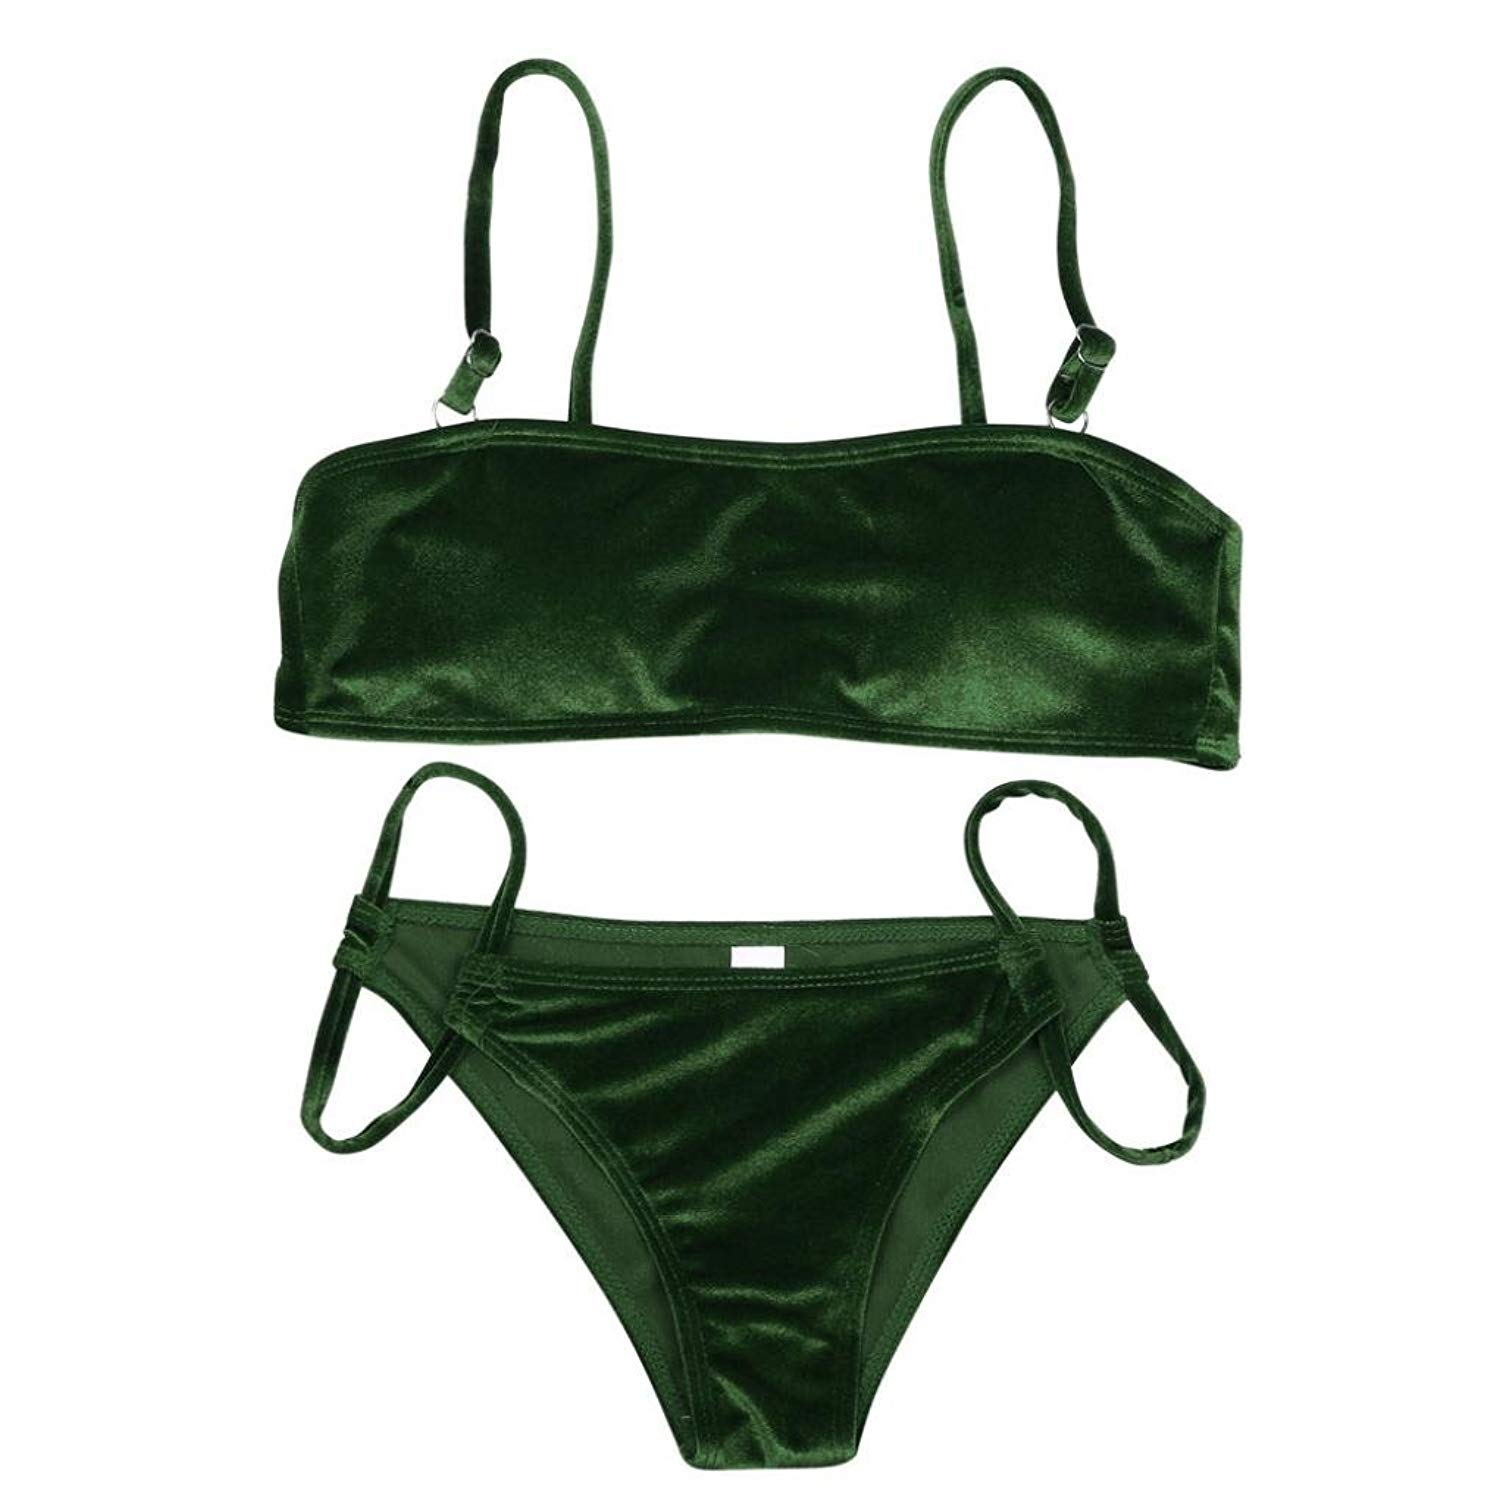 ded1d38893c Cheap Ruched Bottom Bathing Suits, find Ruched Bottom Bathing Suits ...